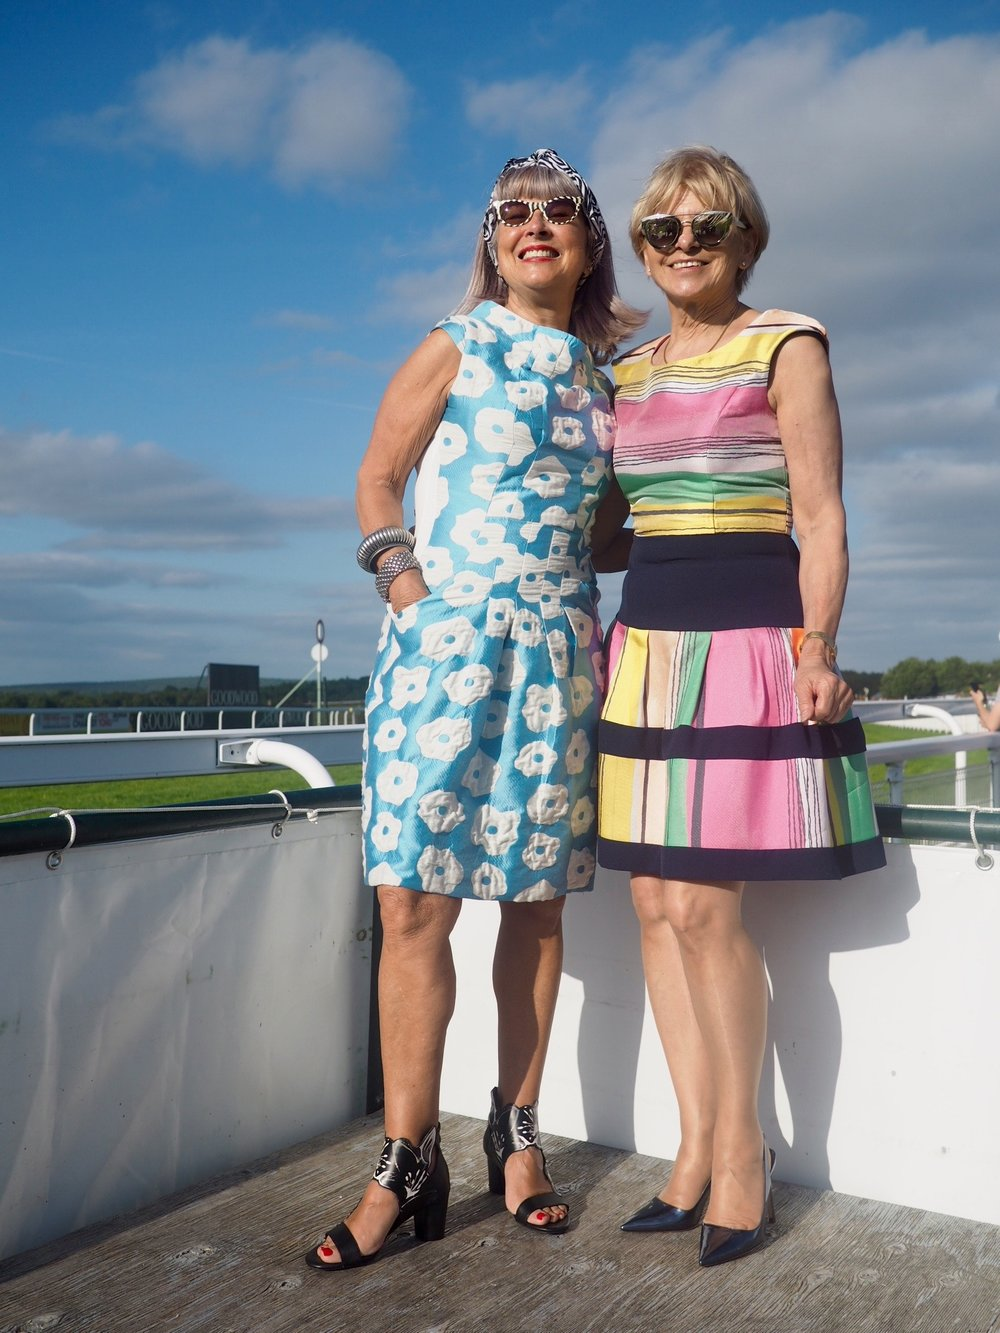 Goodwood: DJs, dancing and dressing up